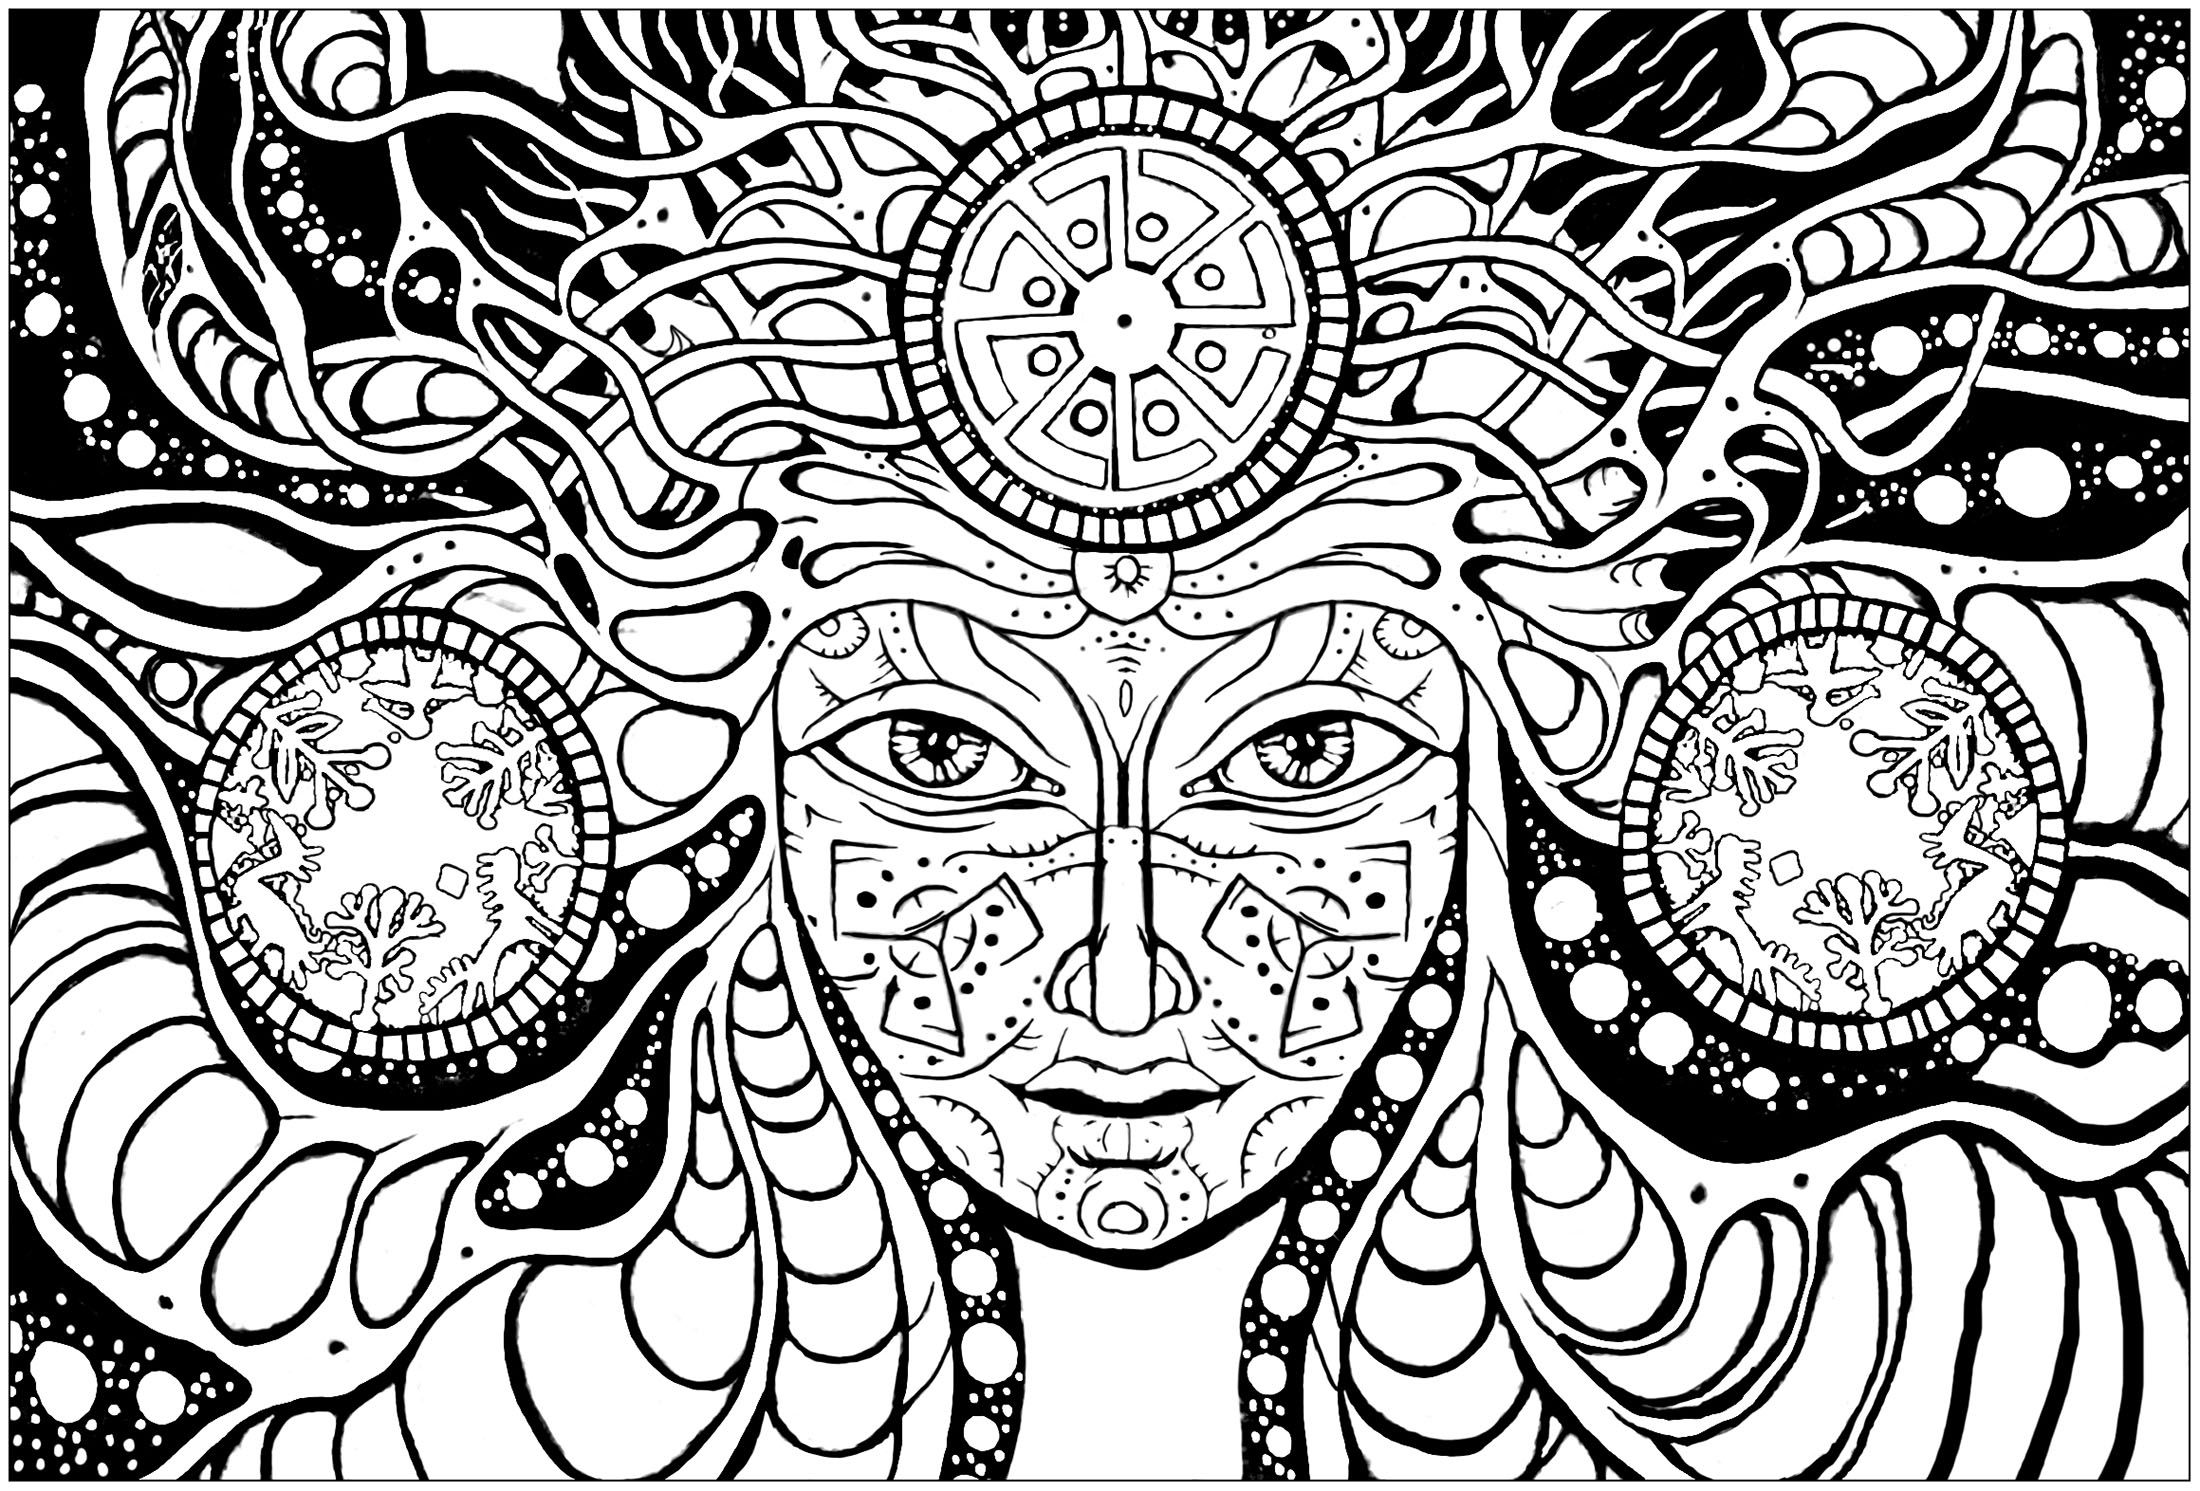 Psychedelic Woman Color This Woman Face And The Strange Patterns That Surround Her From The Gallery Skull Coloring Pages Sun Coloring Pages Coloring Pages